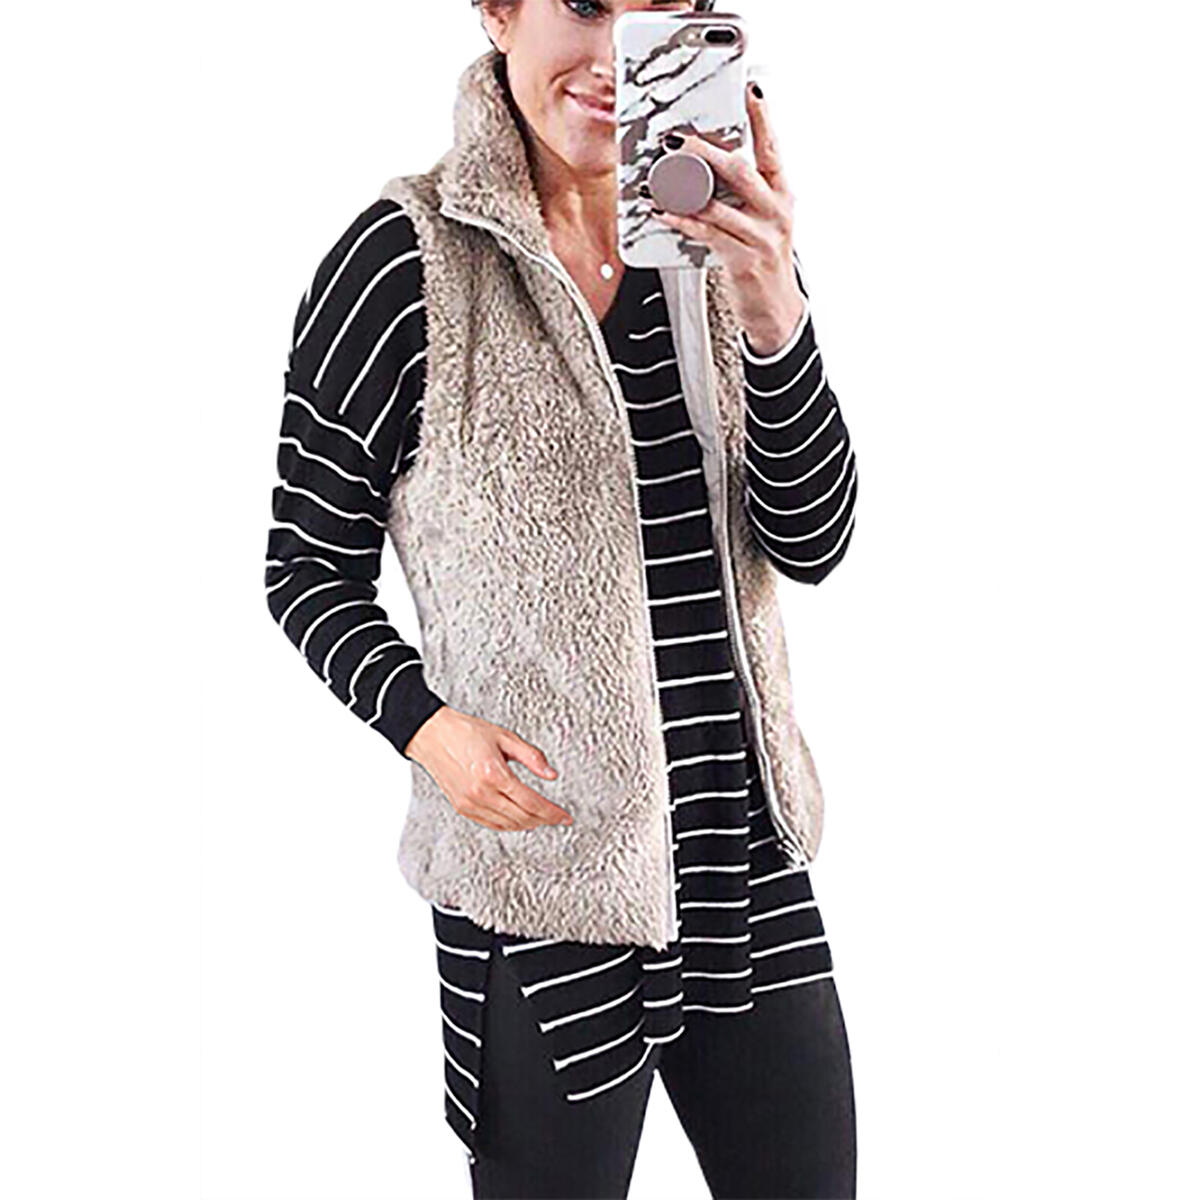 Women's Casual Soft Front Zip Waistcoat Sleeveless Lightweight Warm Fuzzy Sherpa Fleece Vest with Pockets All